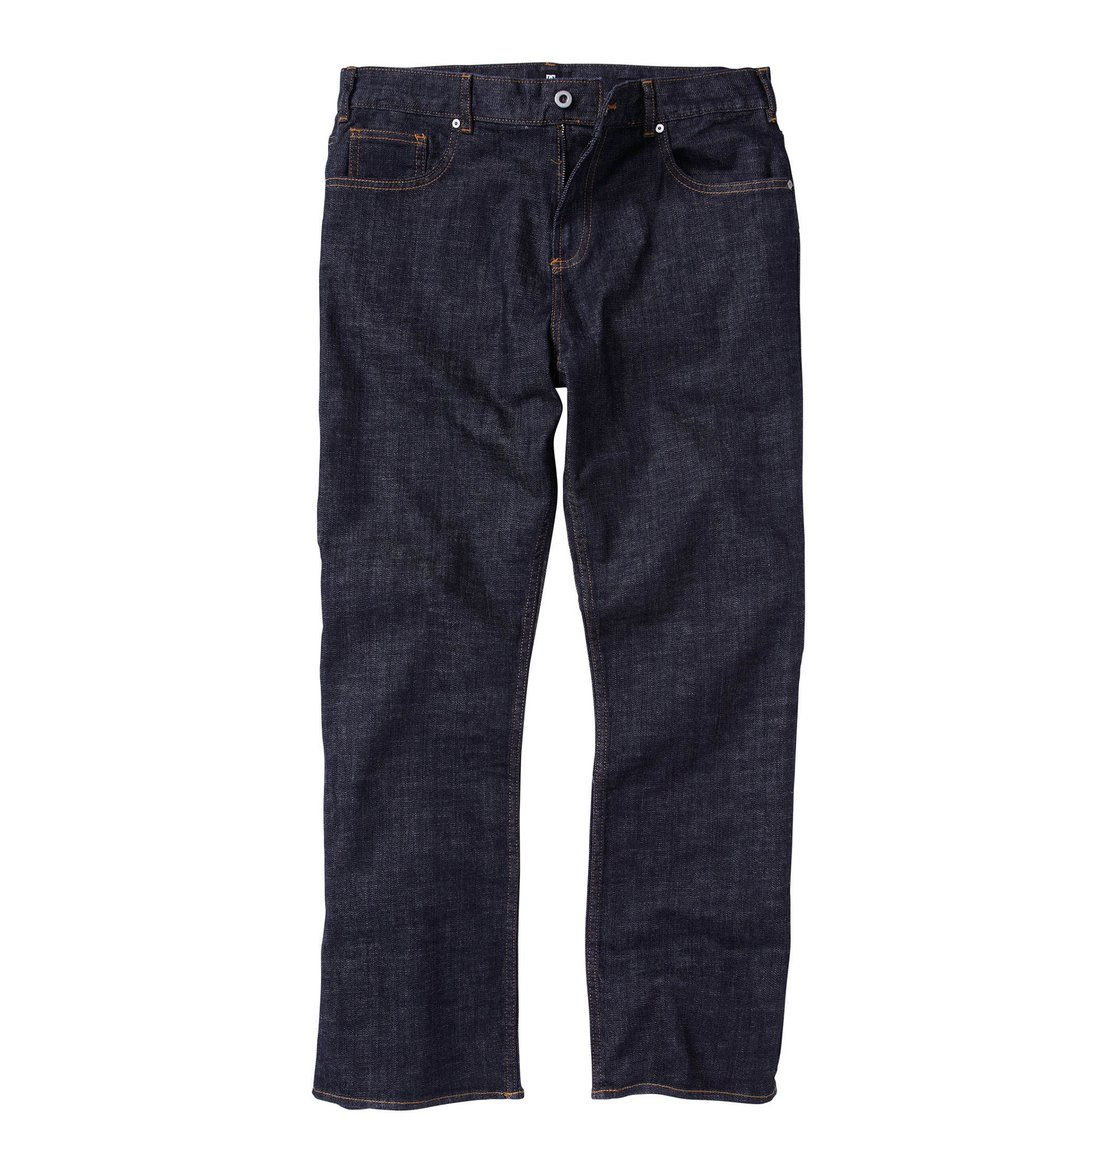 Men's Loose Fit Jeans 53800049 | DC Shoes